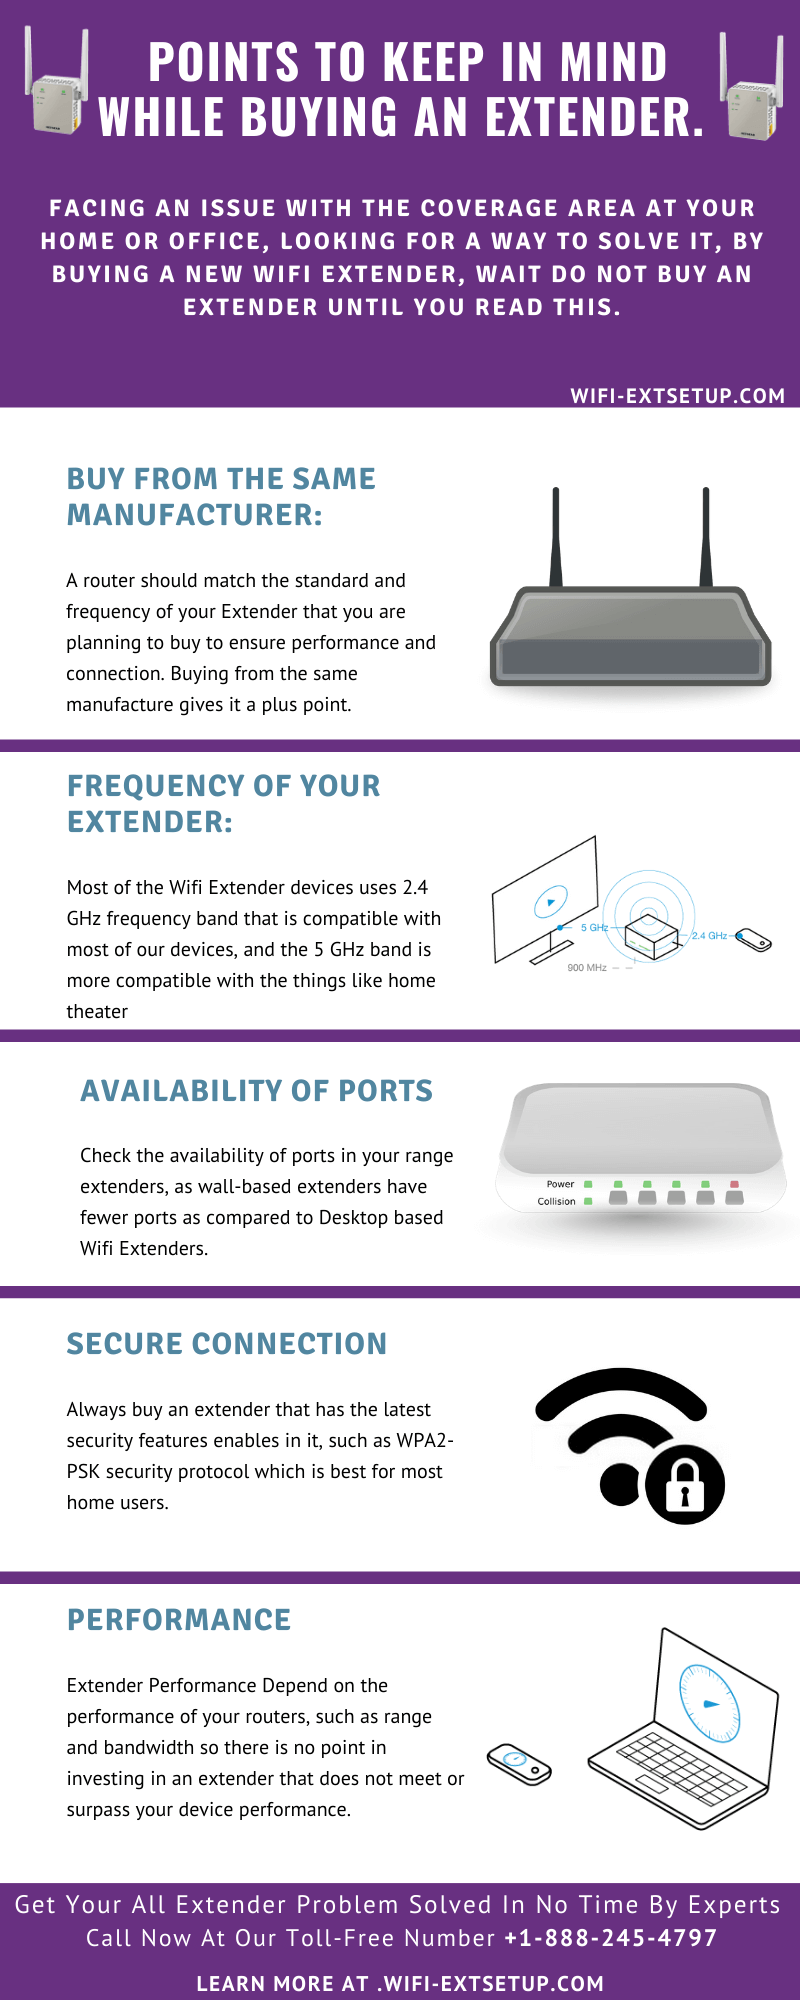 Extender Buying Guide Infographic with all tips and tricks that you need to keep in mind before buying an extender.